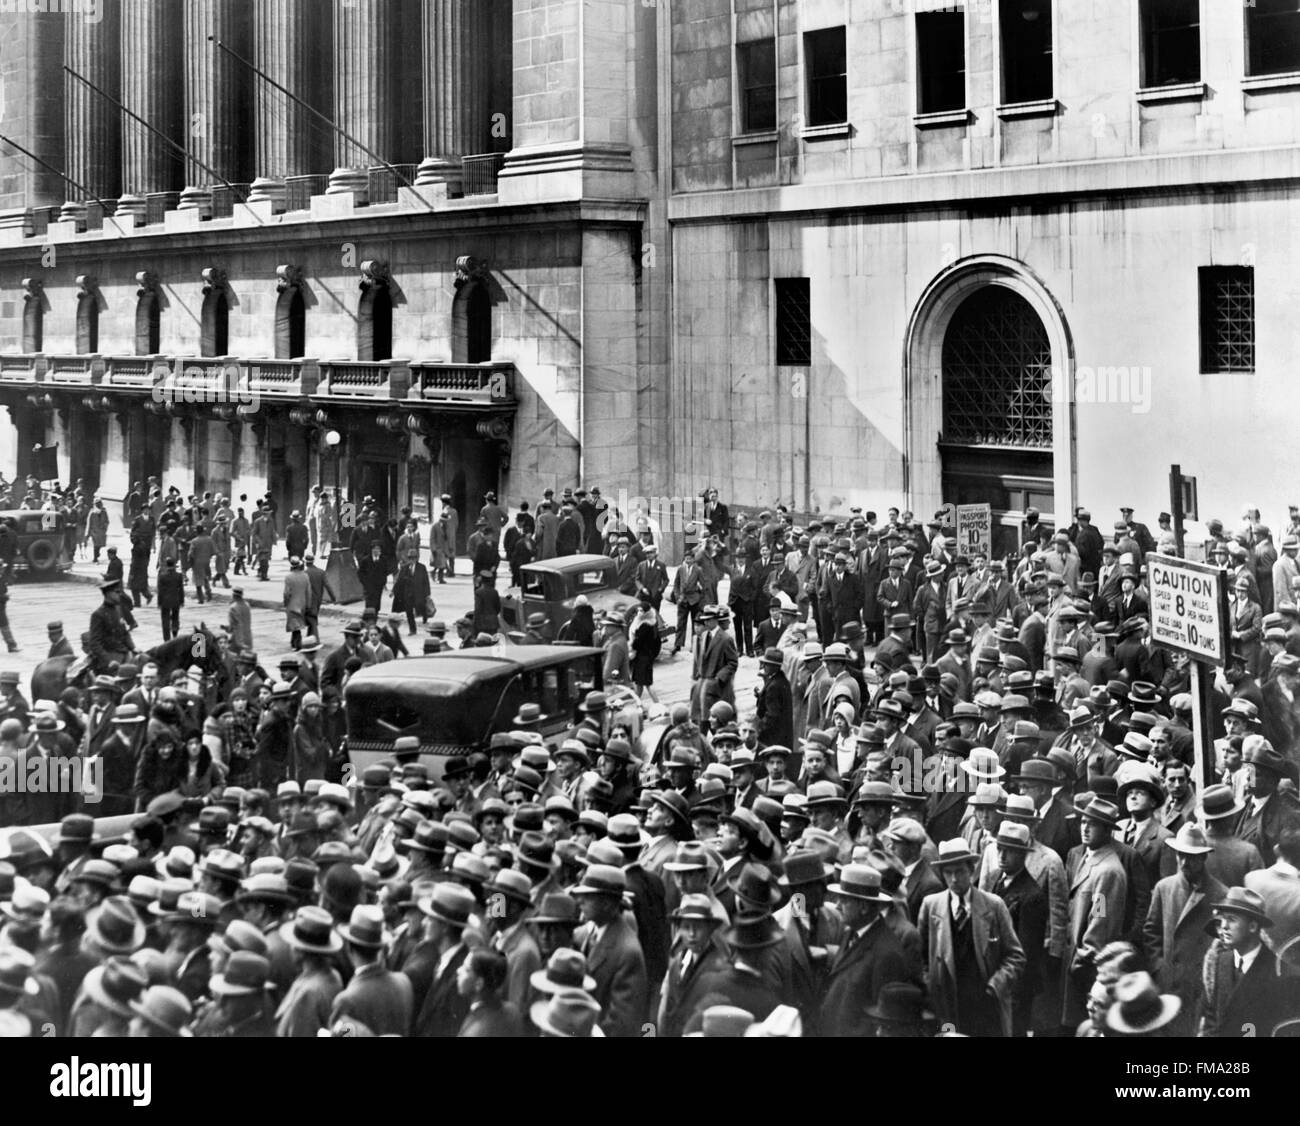 Wall Street Crash. Crowd of people gather outside the New York Stock Exchange following the Crash of 1929, which - Stock Image